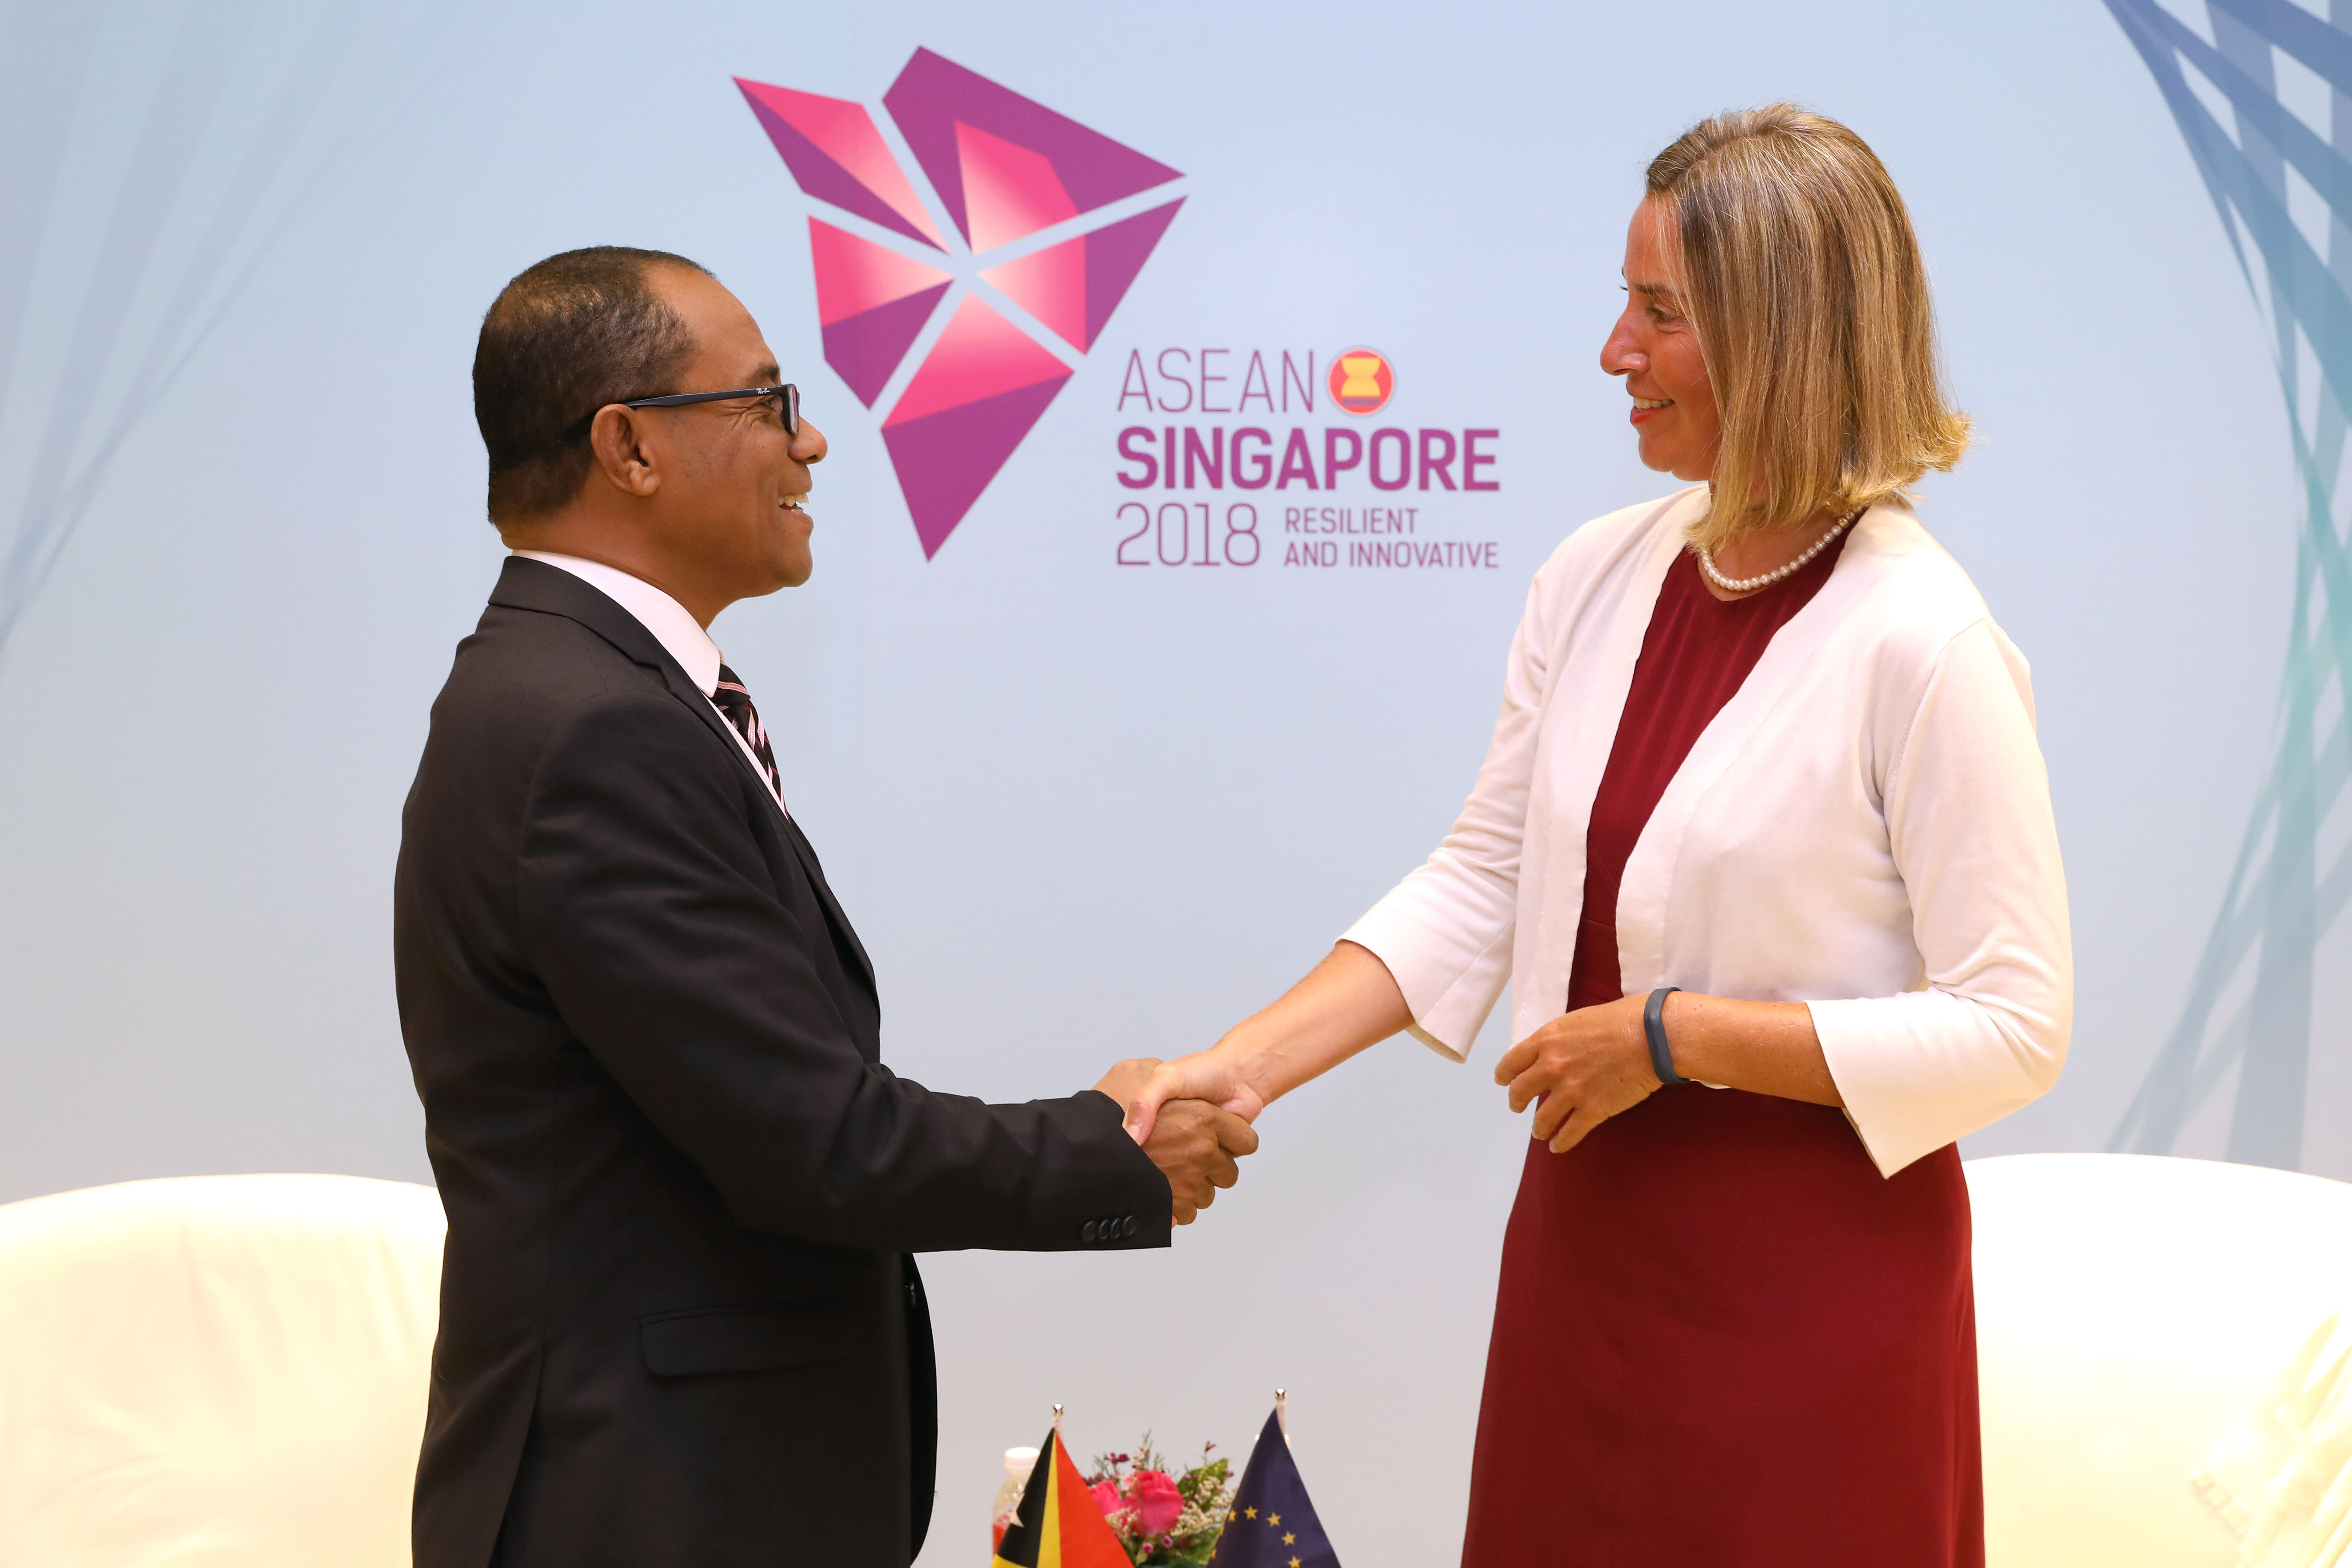 EU VPC/HR Federica Mogherini meets with Dionísio da Costa Babo Soares, Minister of Foreign Affairs of Timor Leste, while attending the 51st ASEAN Foreign Ministers' Meeting and related meetings.